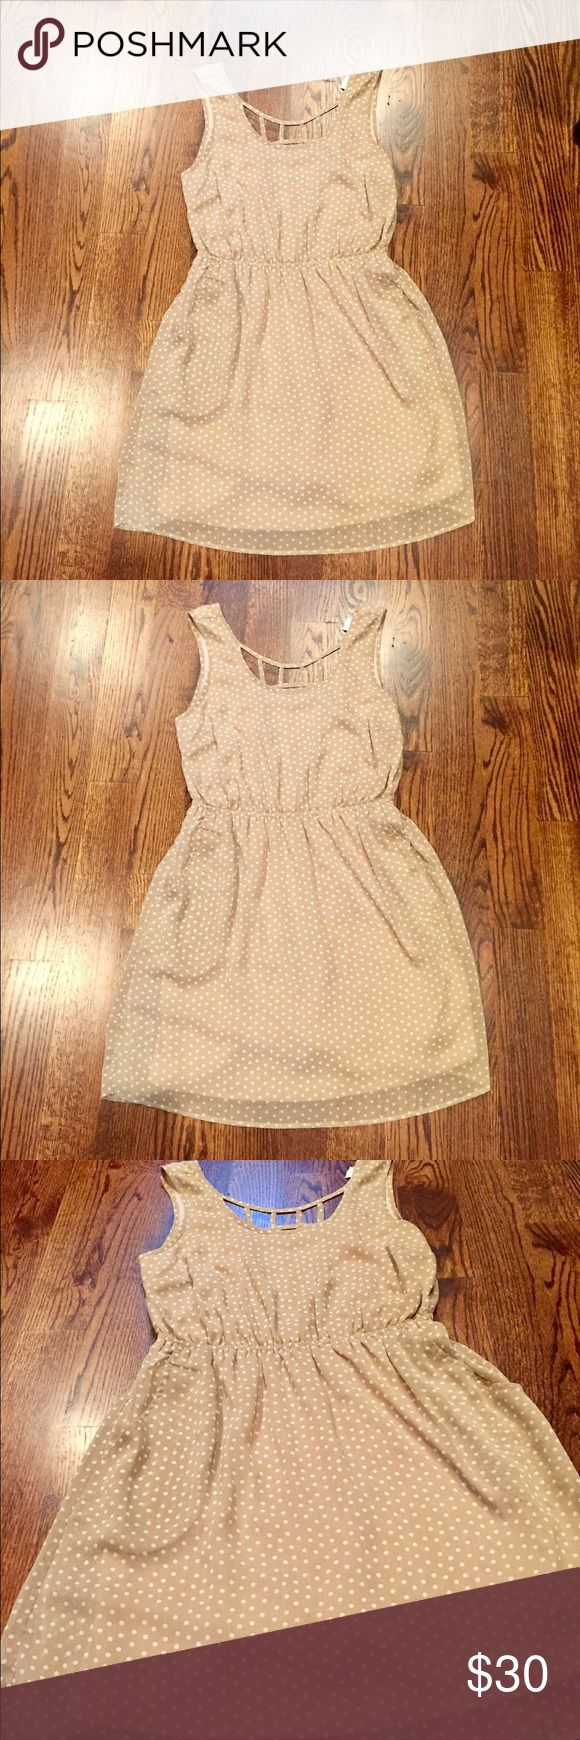 CLOSET CLEAR OUT SALE ⚡️ Beige and white polka-dot dress. Perfect condition. Scoop neck. Sheer dress with attached slip underneath. Super cute and trendy cut outs in the back. Perfect for a night out or for a work day American Rag Dresses